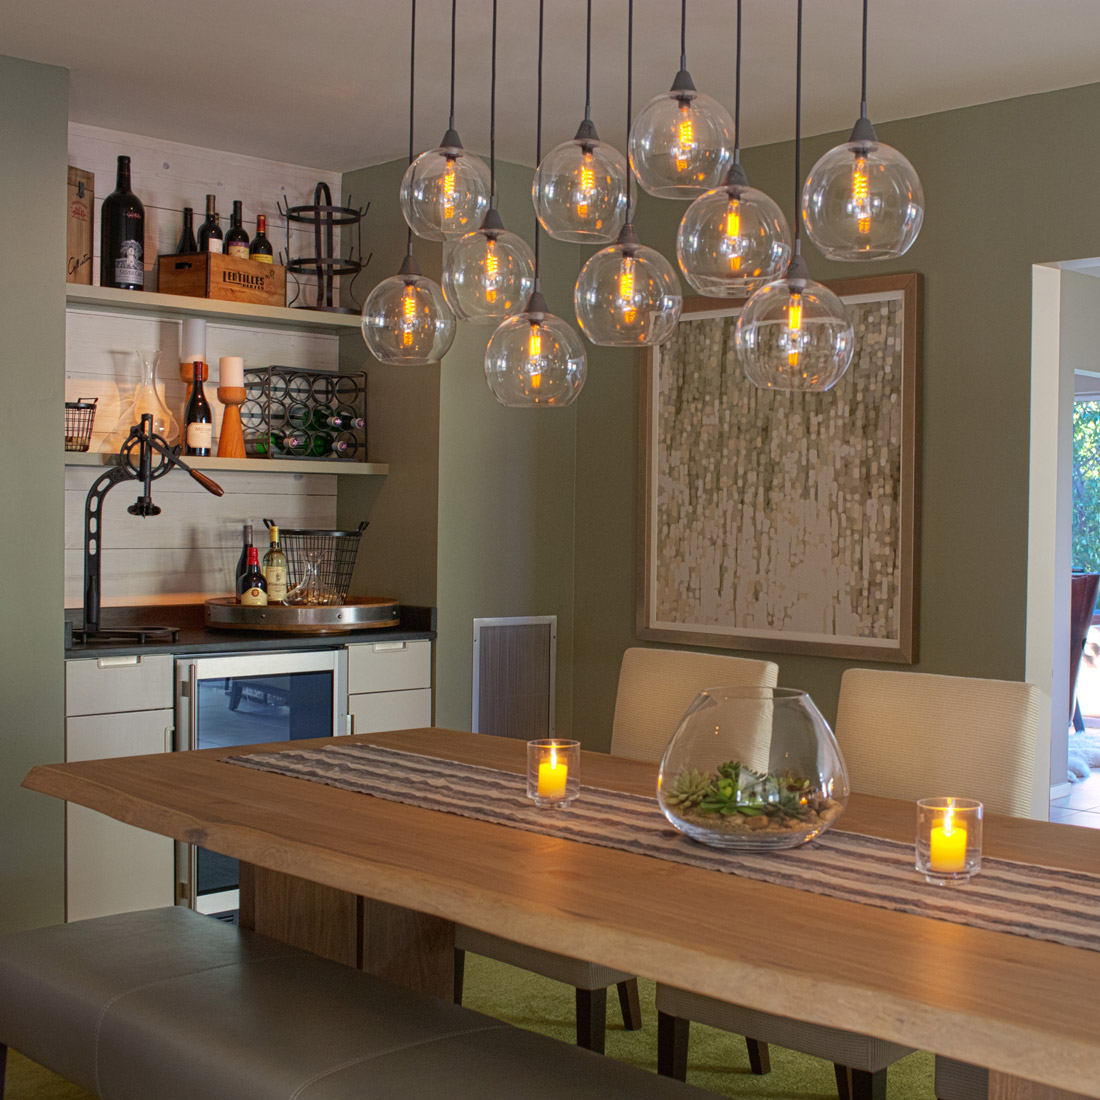 rustic modern dining room with globe pendants and bench seating mixed with white upholstered chairs and features a built in bar with wine fridge and wood cladding a grey green paint on walls design by sara bates interior design